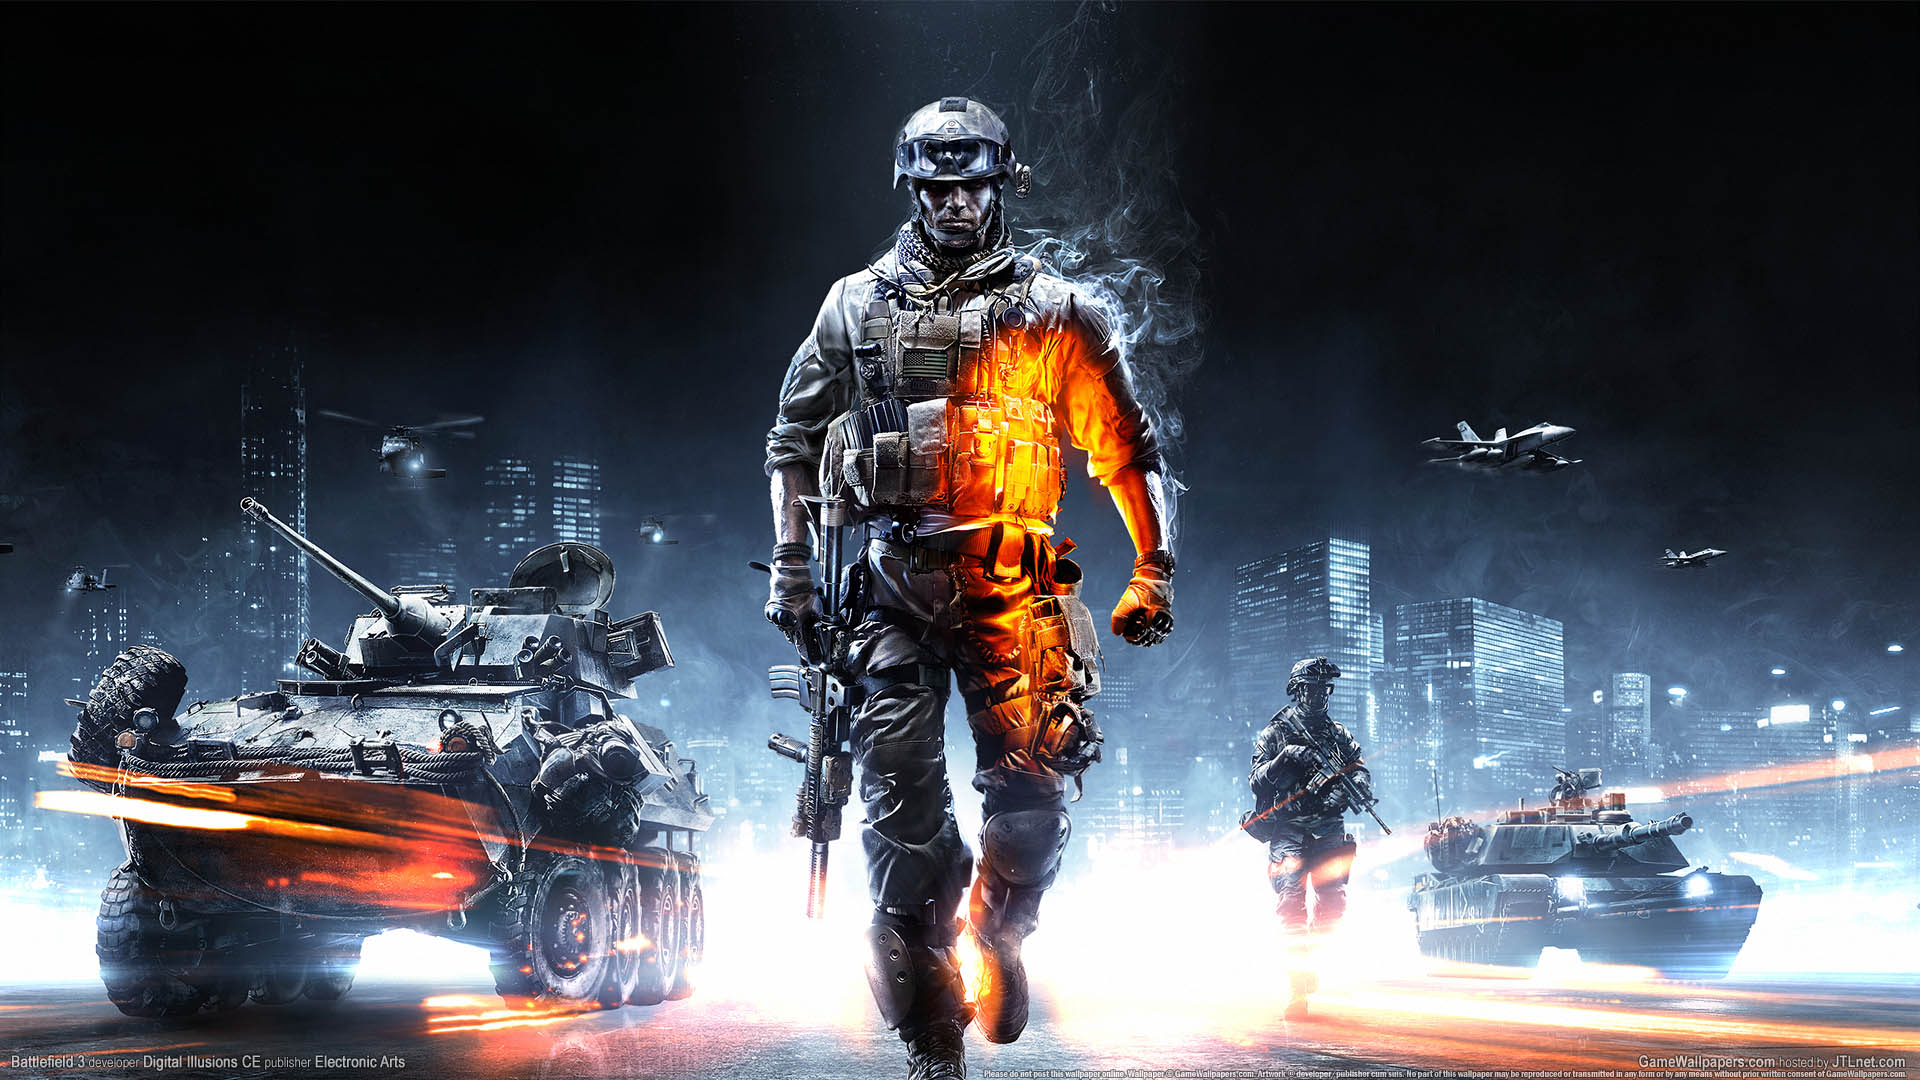 Cool Battlefield 4 Fire Armor In Black Background: Battlefield 3 Wallpaper 01 1920x1080